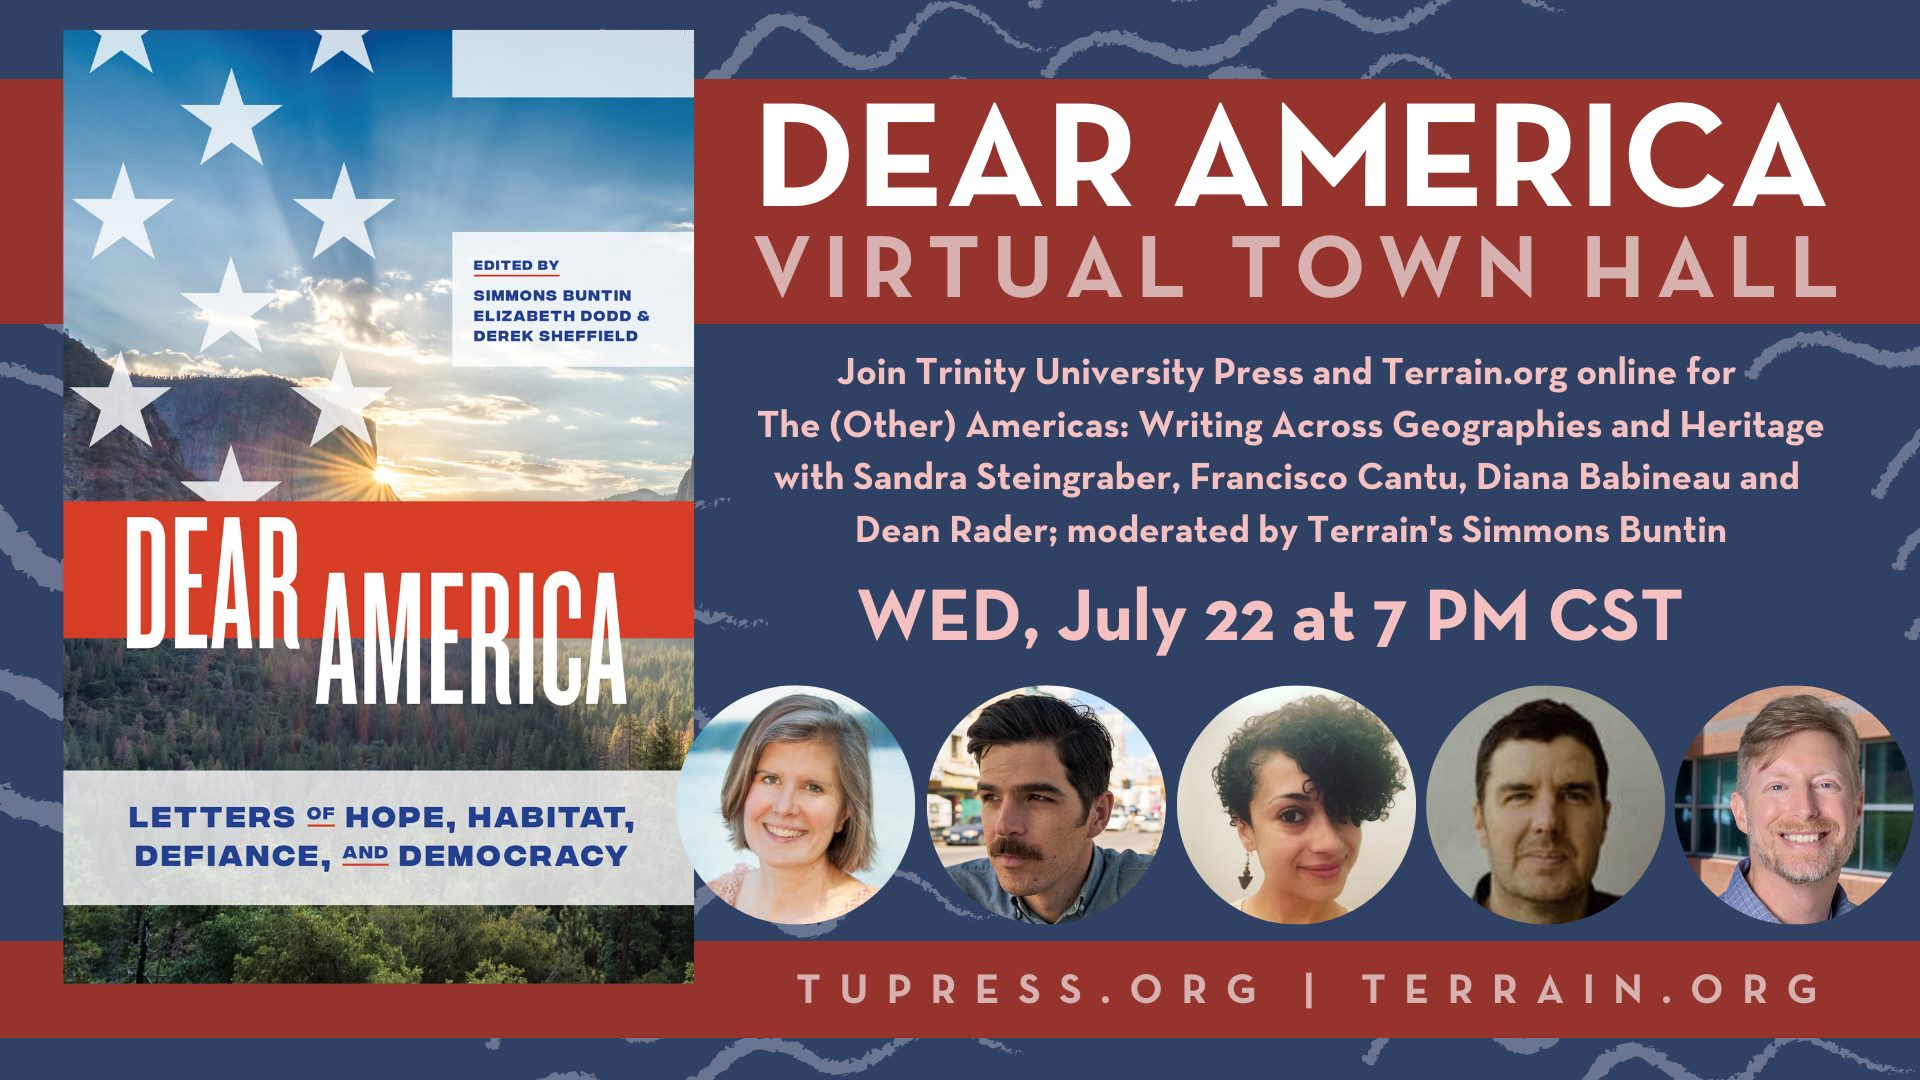 Dear America Virtual Town Hall, July 22, 2020